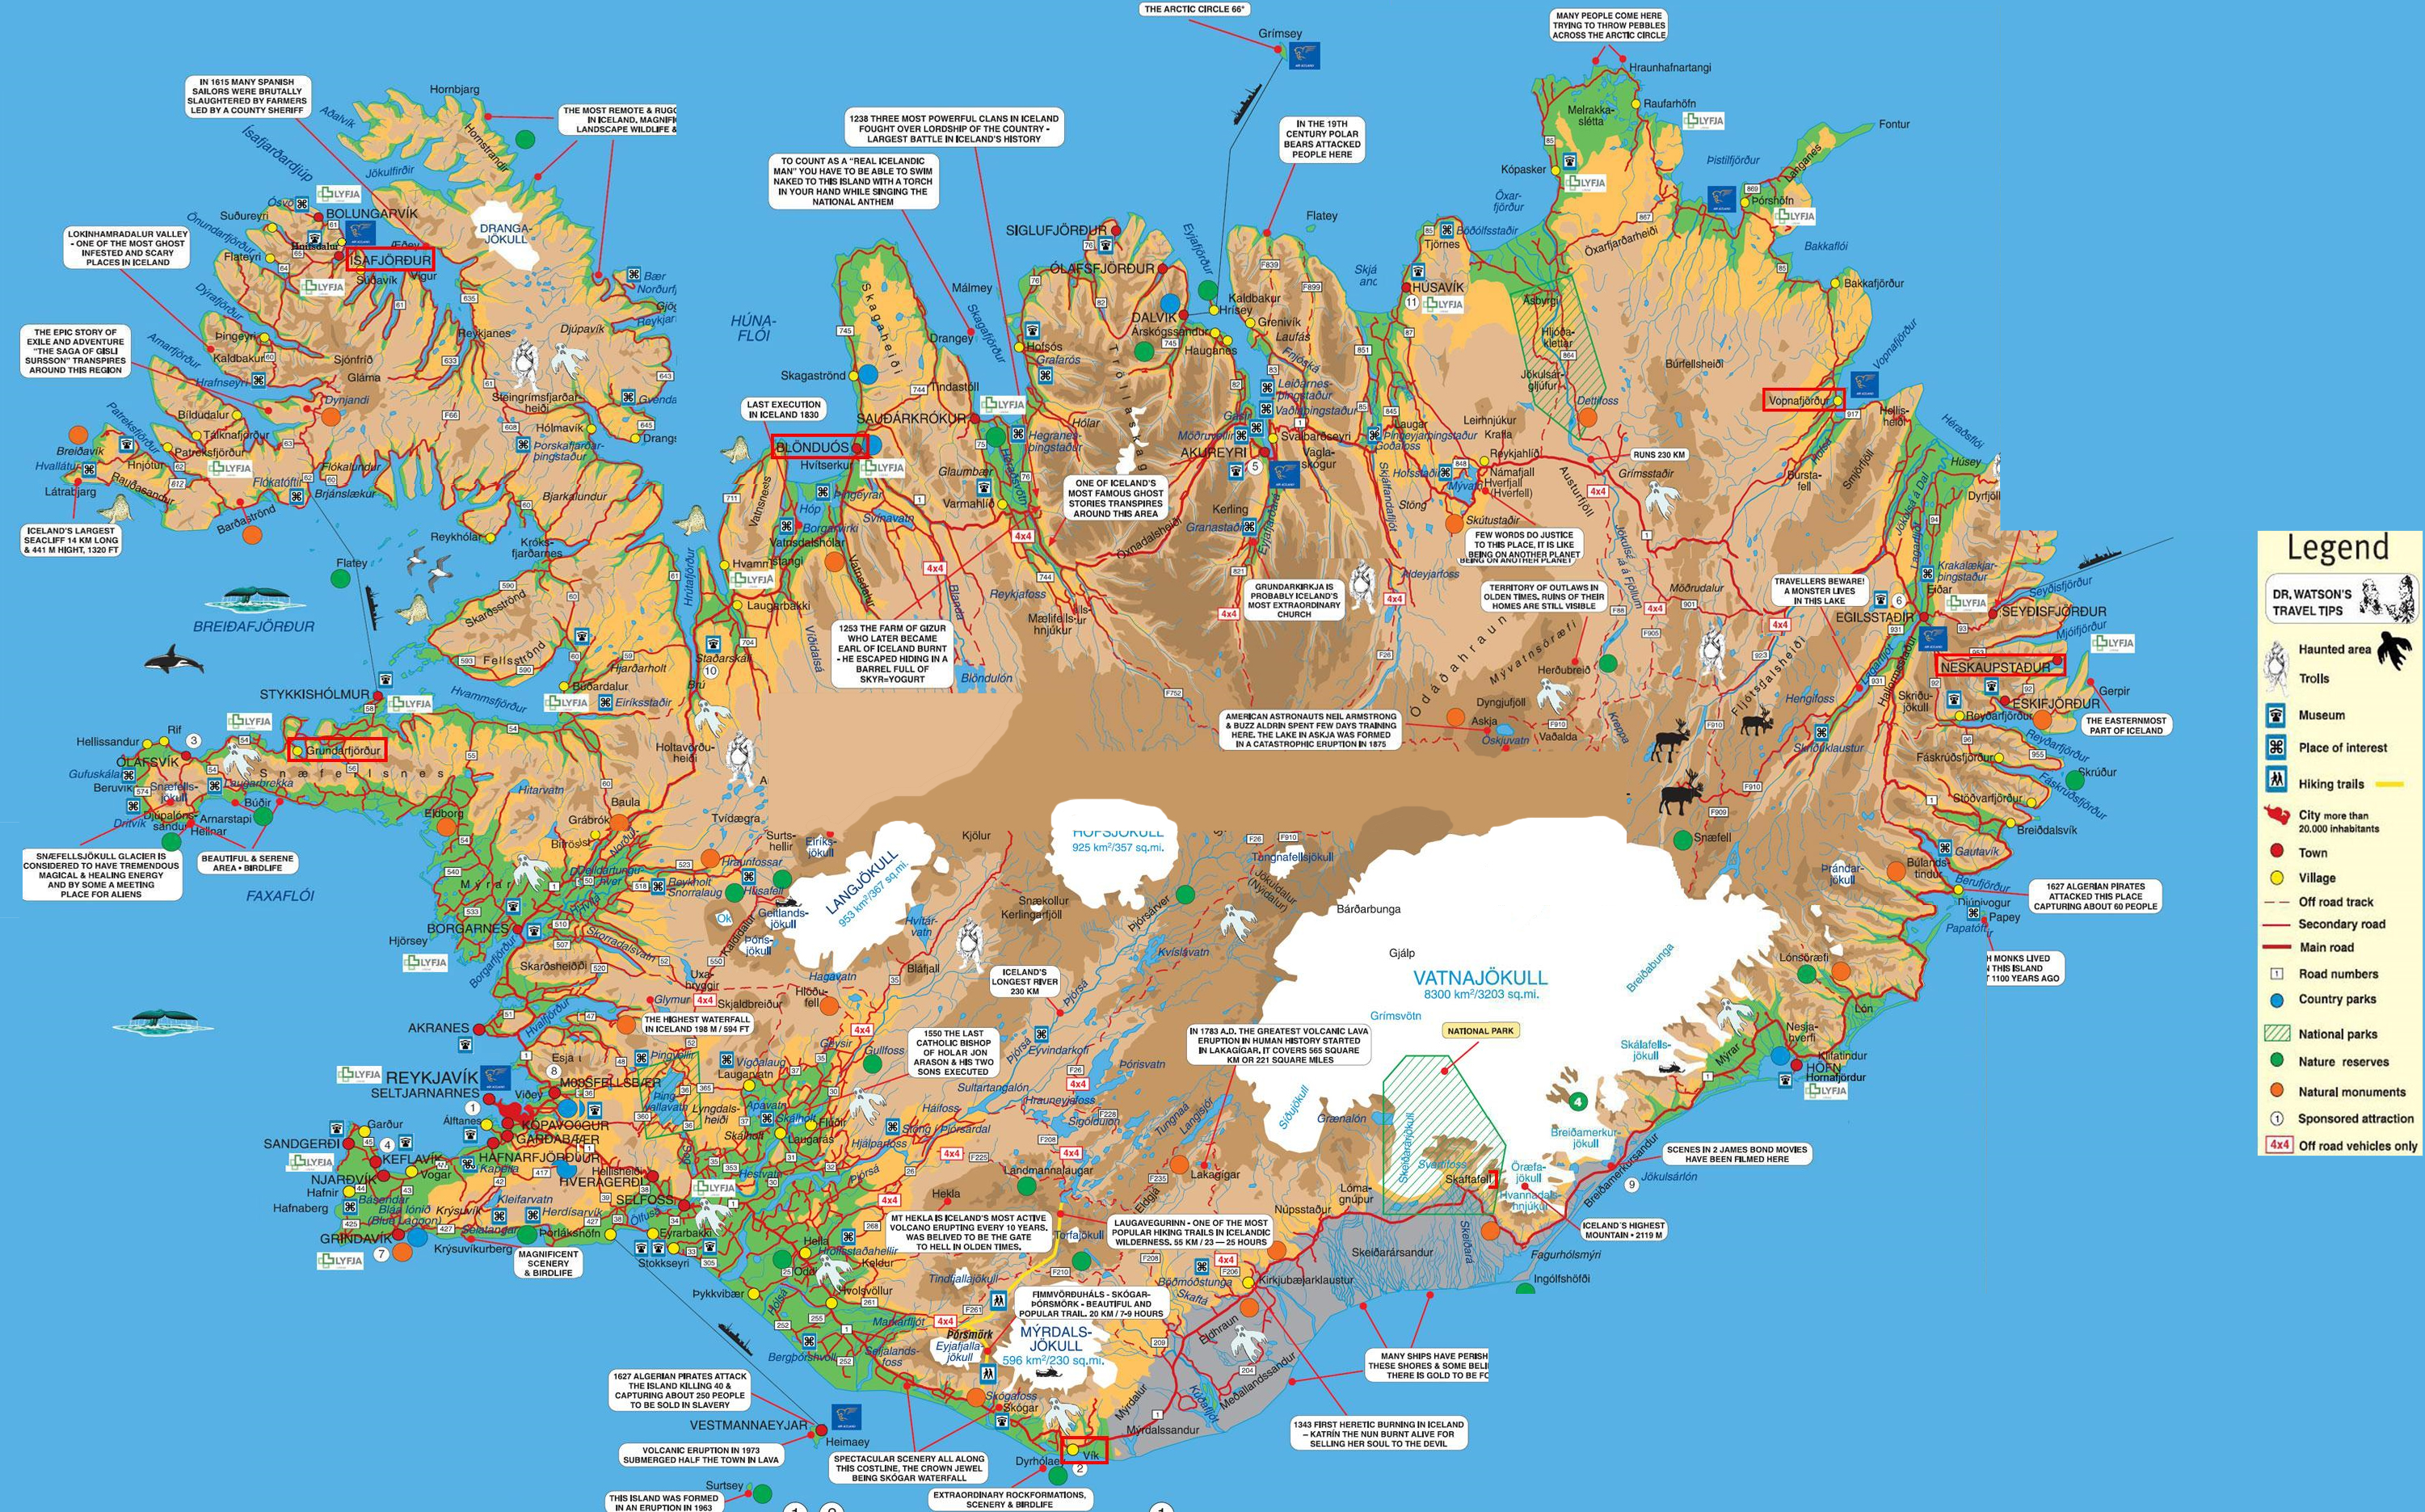 Maps of Iceland | Detailed map of Iceland in English |Tourist map of Images Physical Map Of Iceland on main cities in iceland, satellite map of iceland, large map of iceland, capital region iceland, temperature map of iceland, landform of iceland, famous people from iceland, blue lagoon iceland, vegetation map of iceland, printed map of iceland, detailed map of iceland, capital of iceland, a map of industries in iceland, population density of iceland, topographical map of iceland, time zone of iceland, political map of iceland, topographic map of iceland, map of hotels in iceland, physical features of iceland,